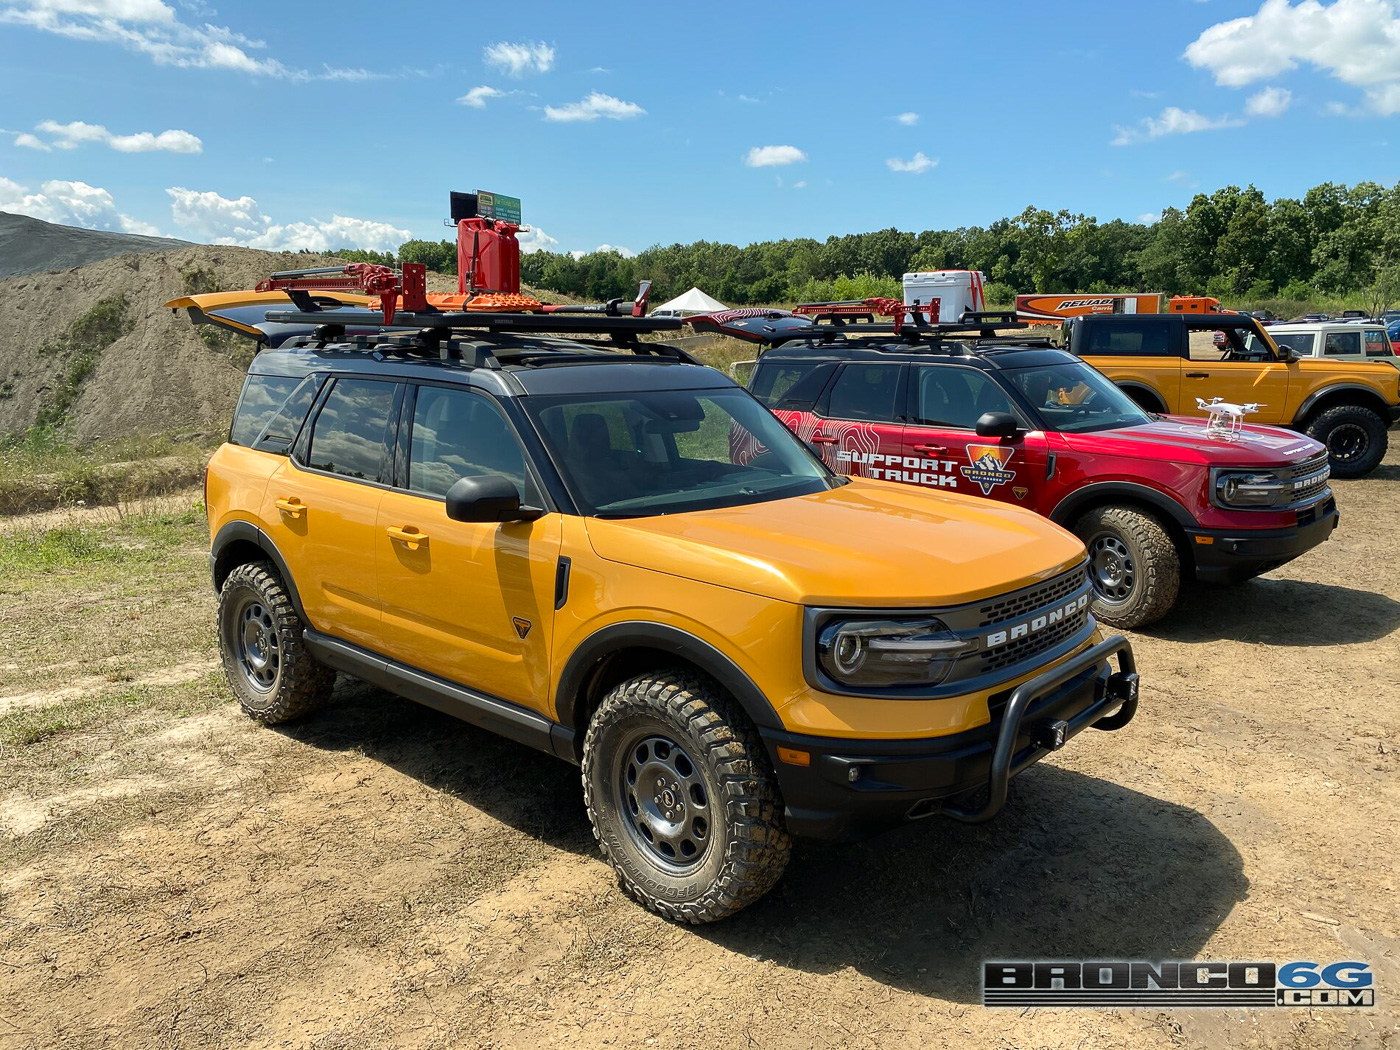 2021-Bronco-First-Ride-Along-Event-9.jpg